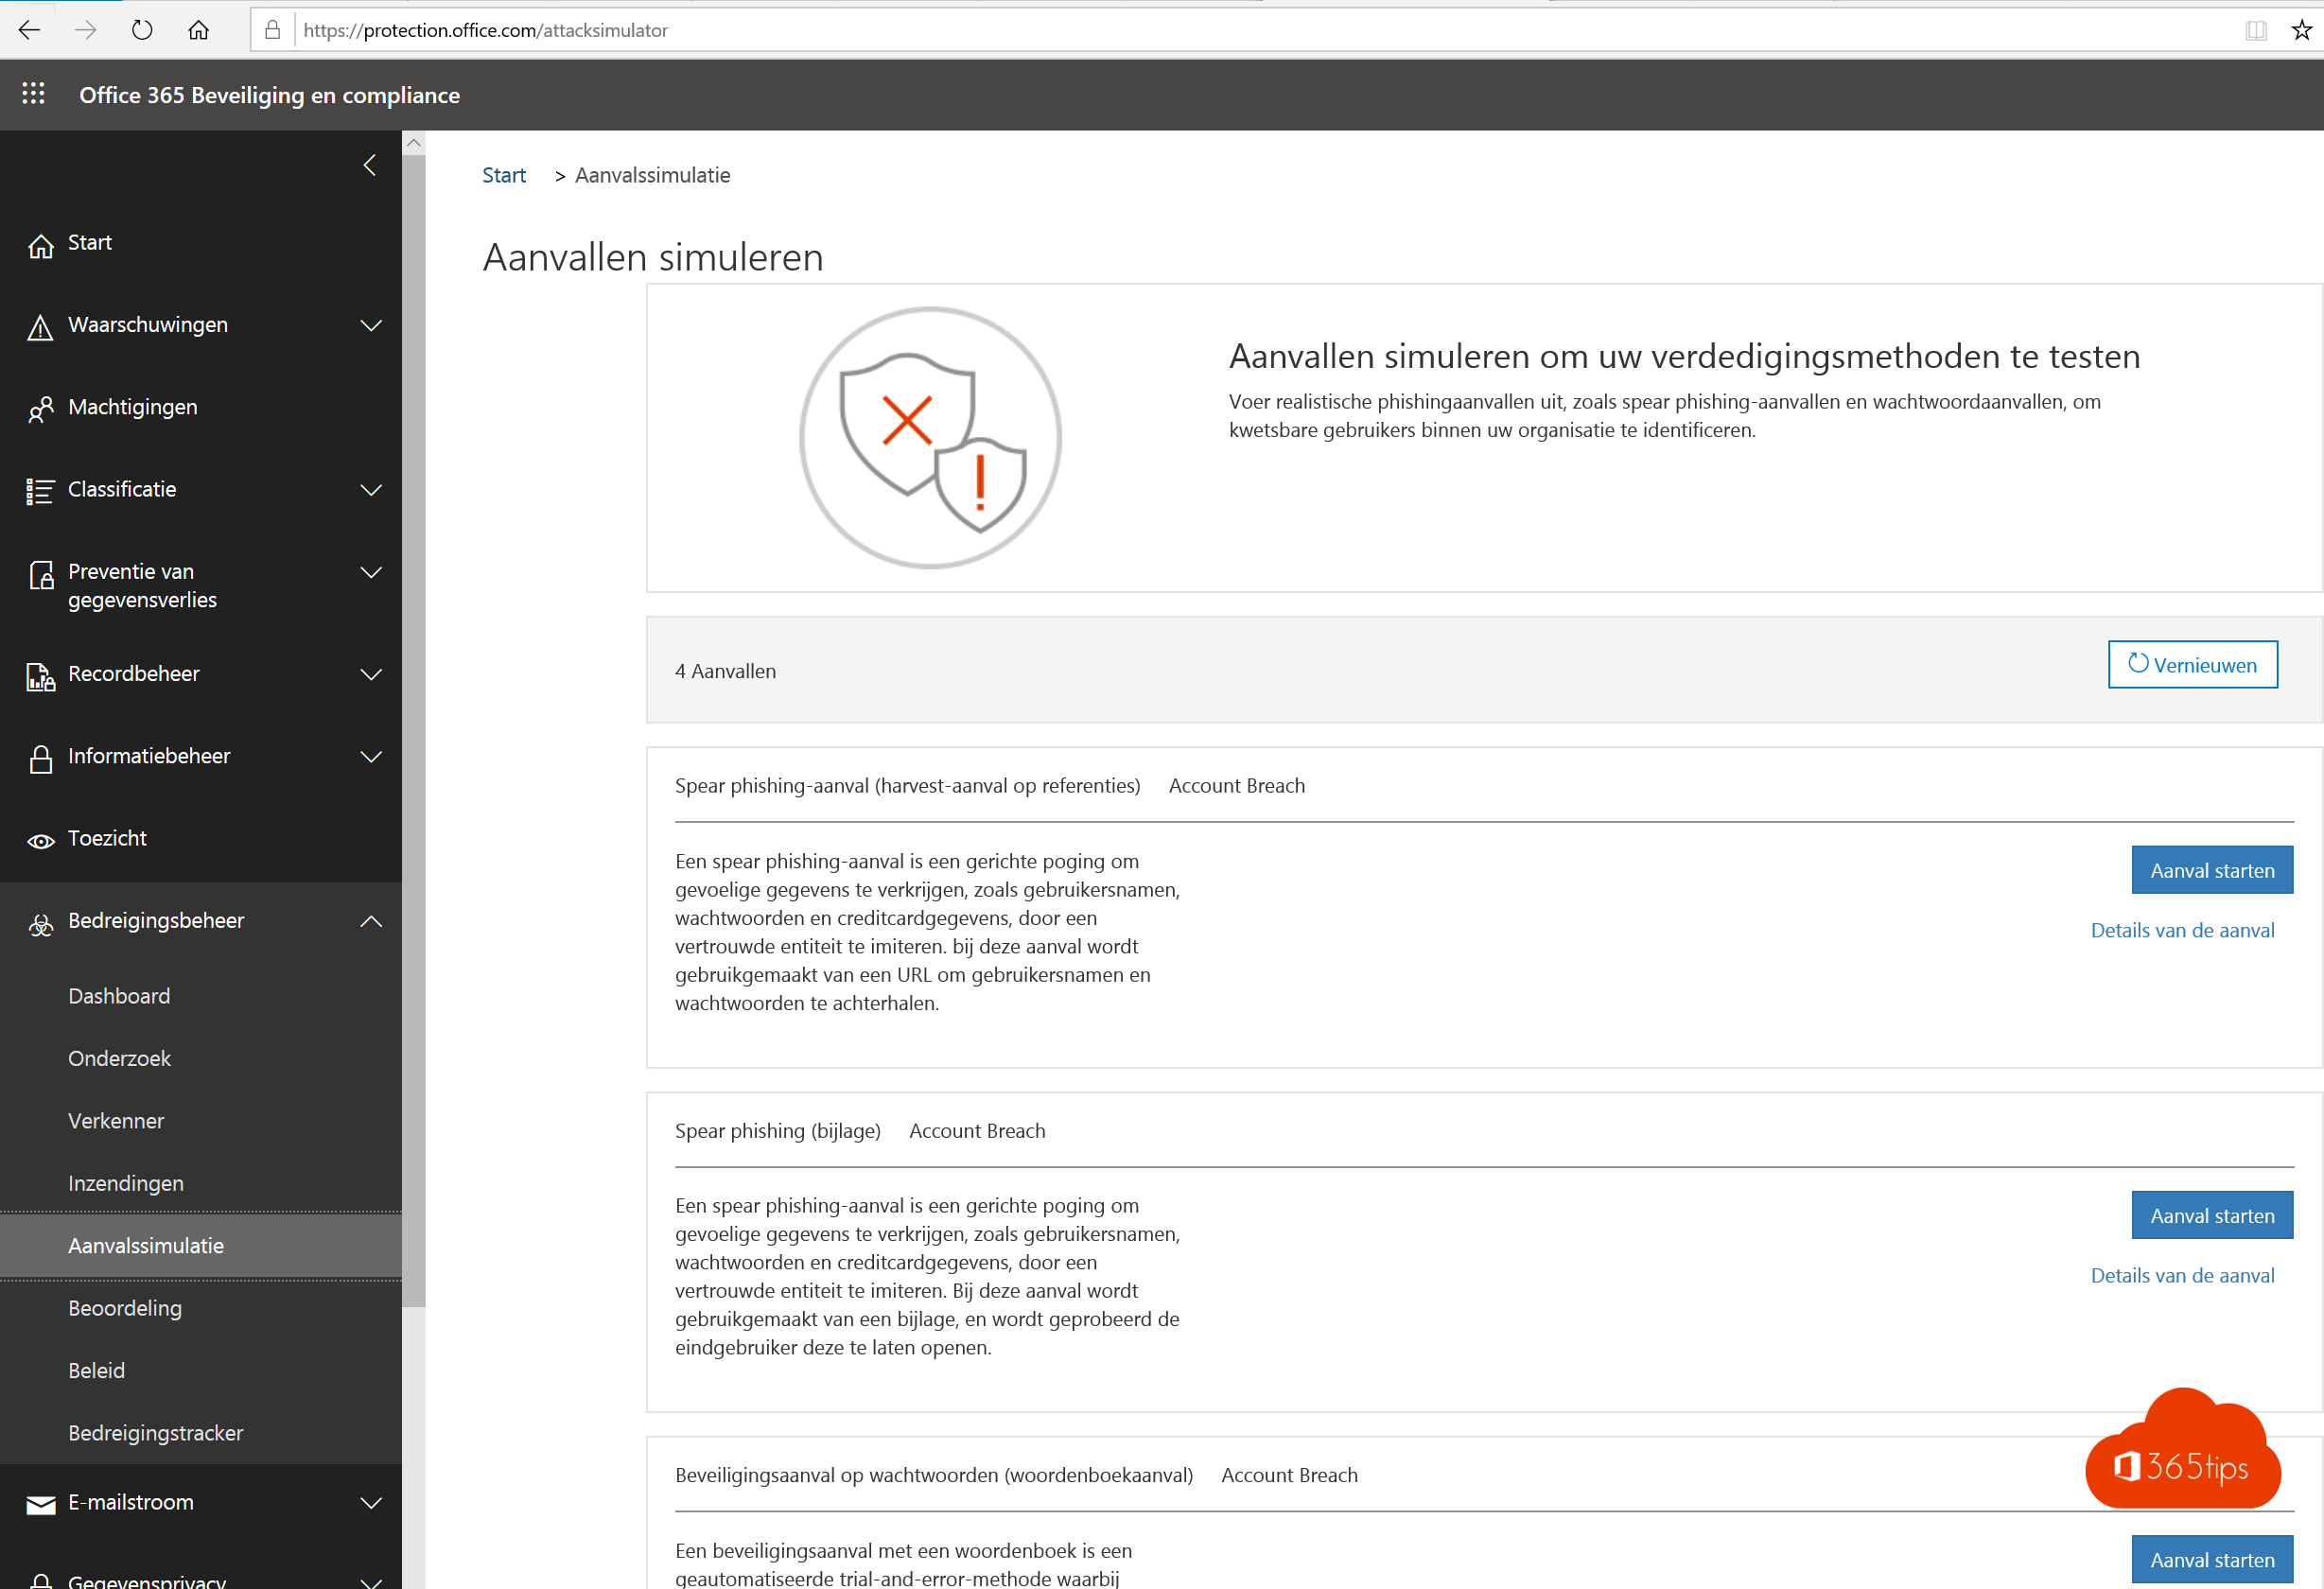 Attack Simulator in Office 365